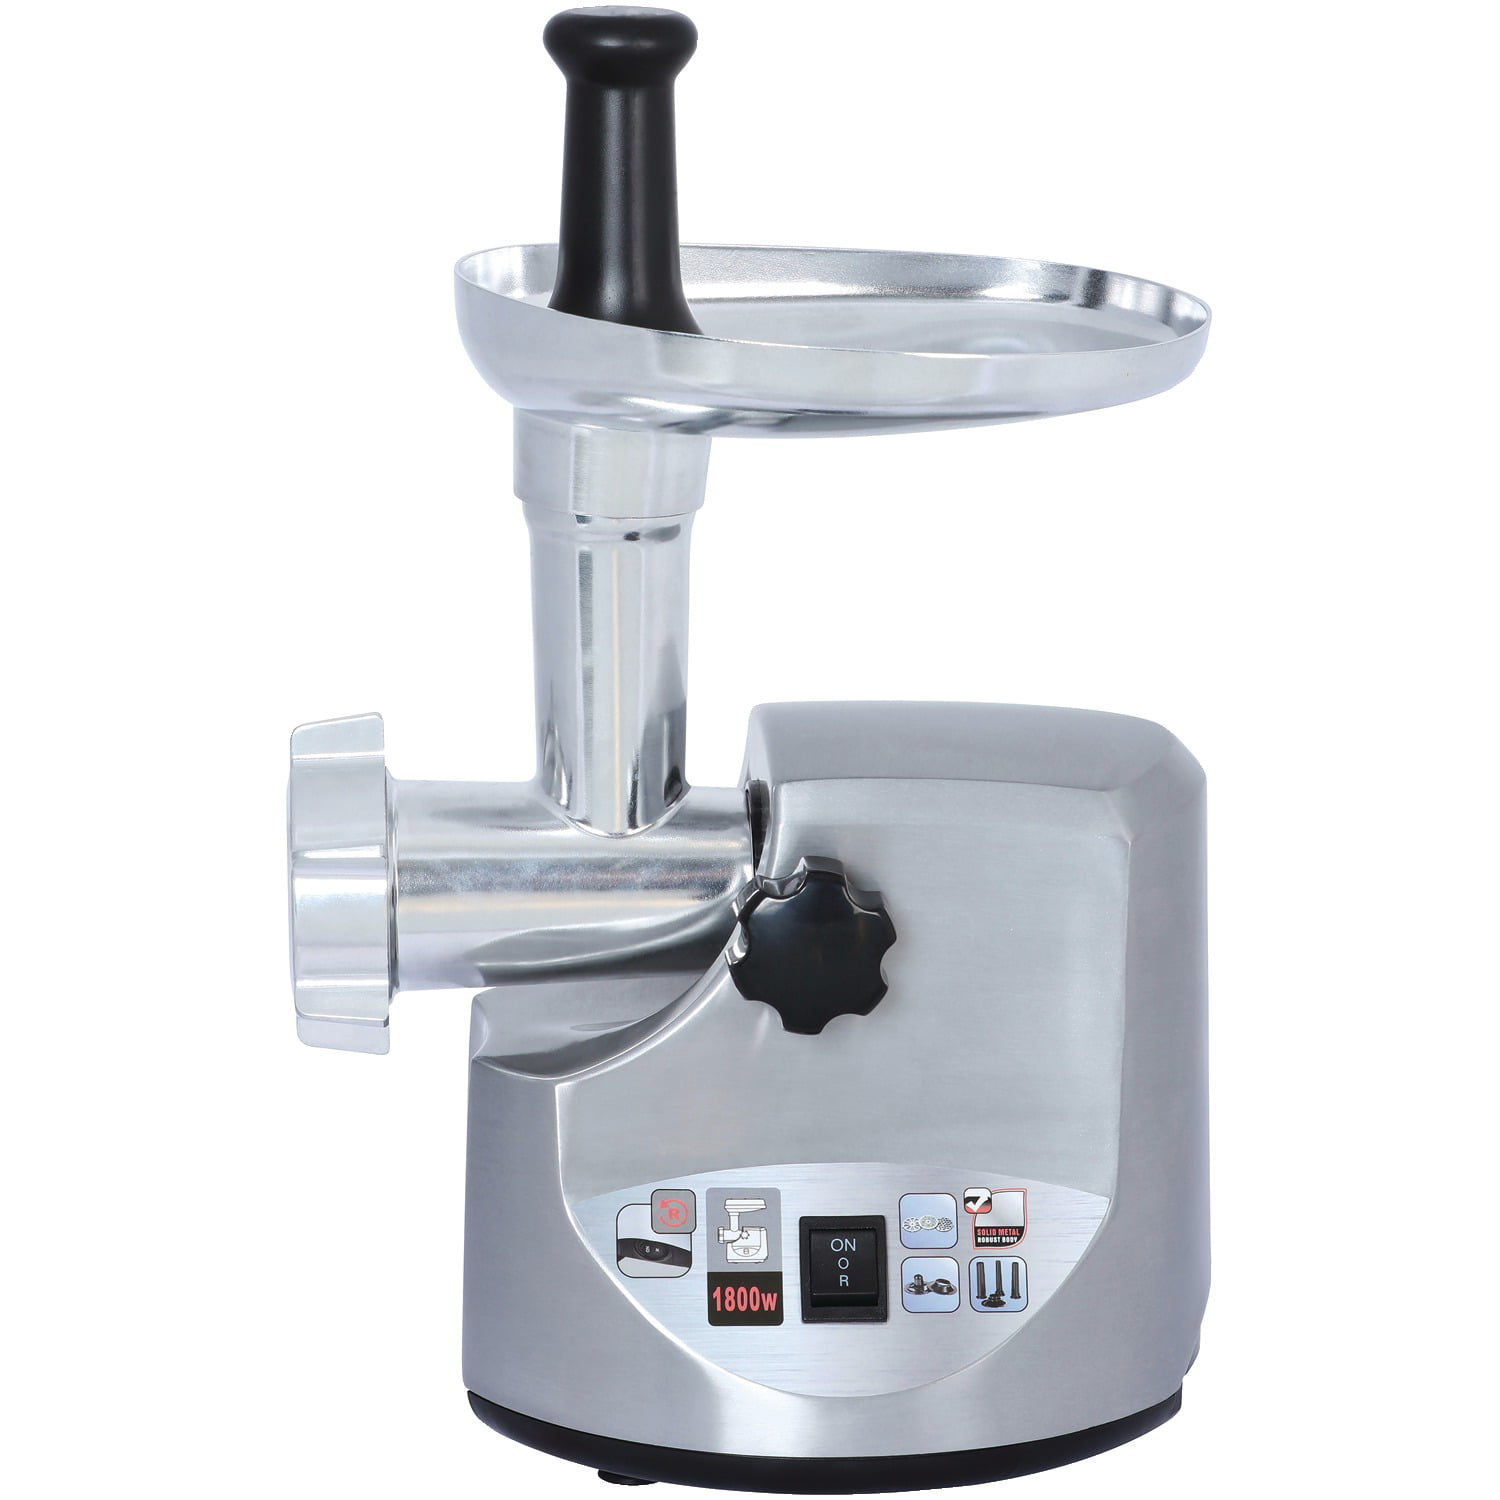 Brentwood Appliances MG-1800S Heavy-duty Meat Grinder by Brentwood Appliances